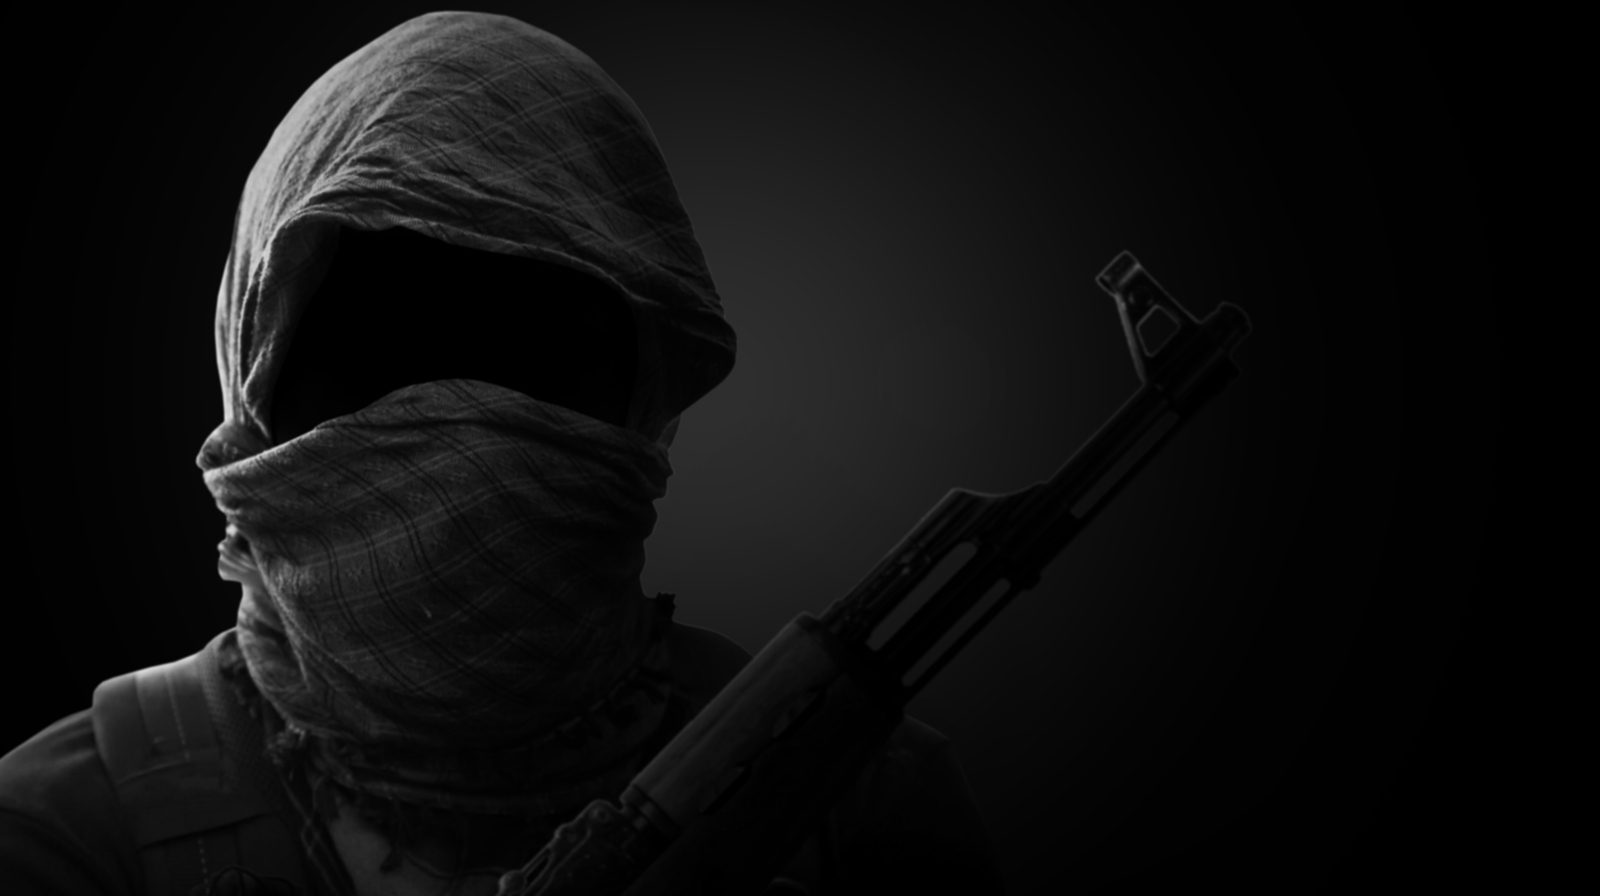 Blurry Background of Terrorist carry weapon hidden in darkness